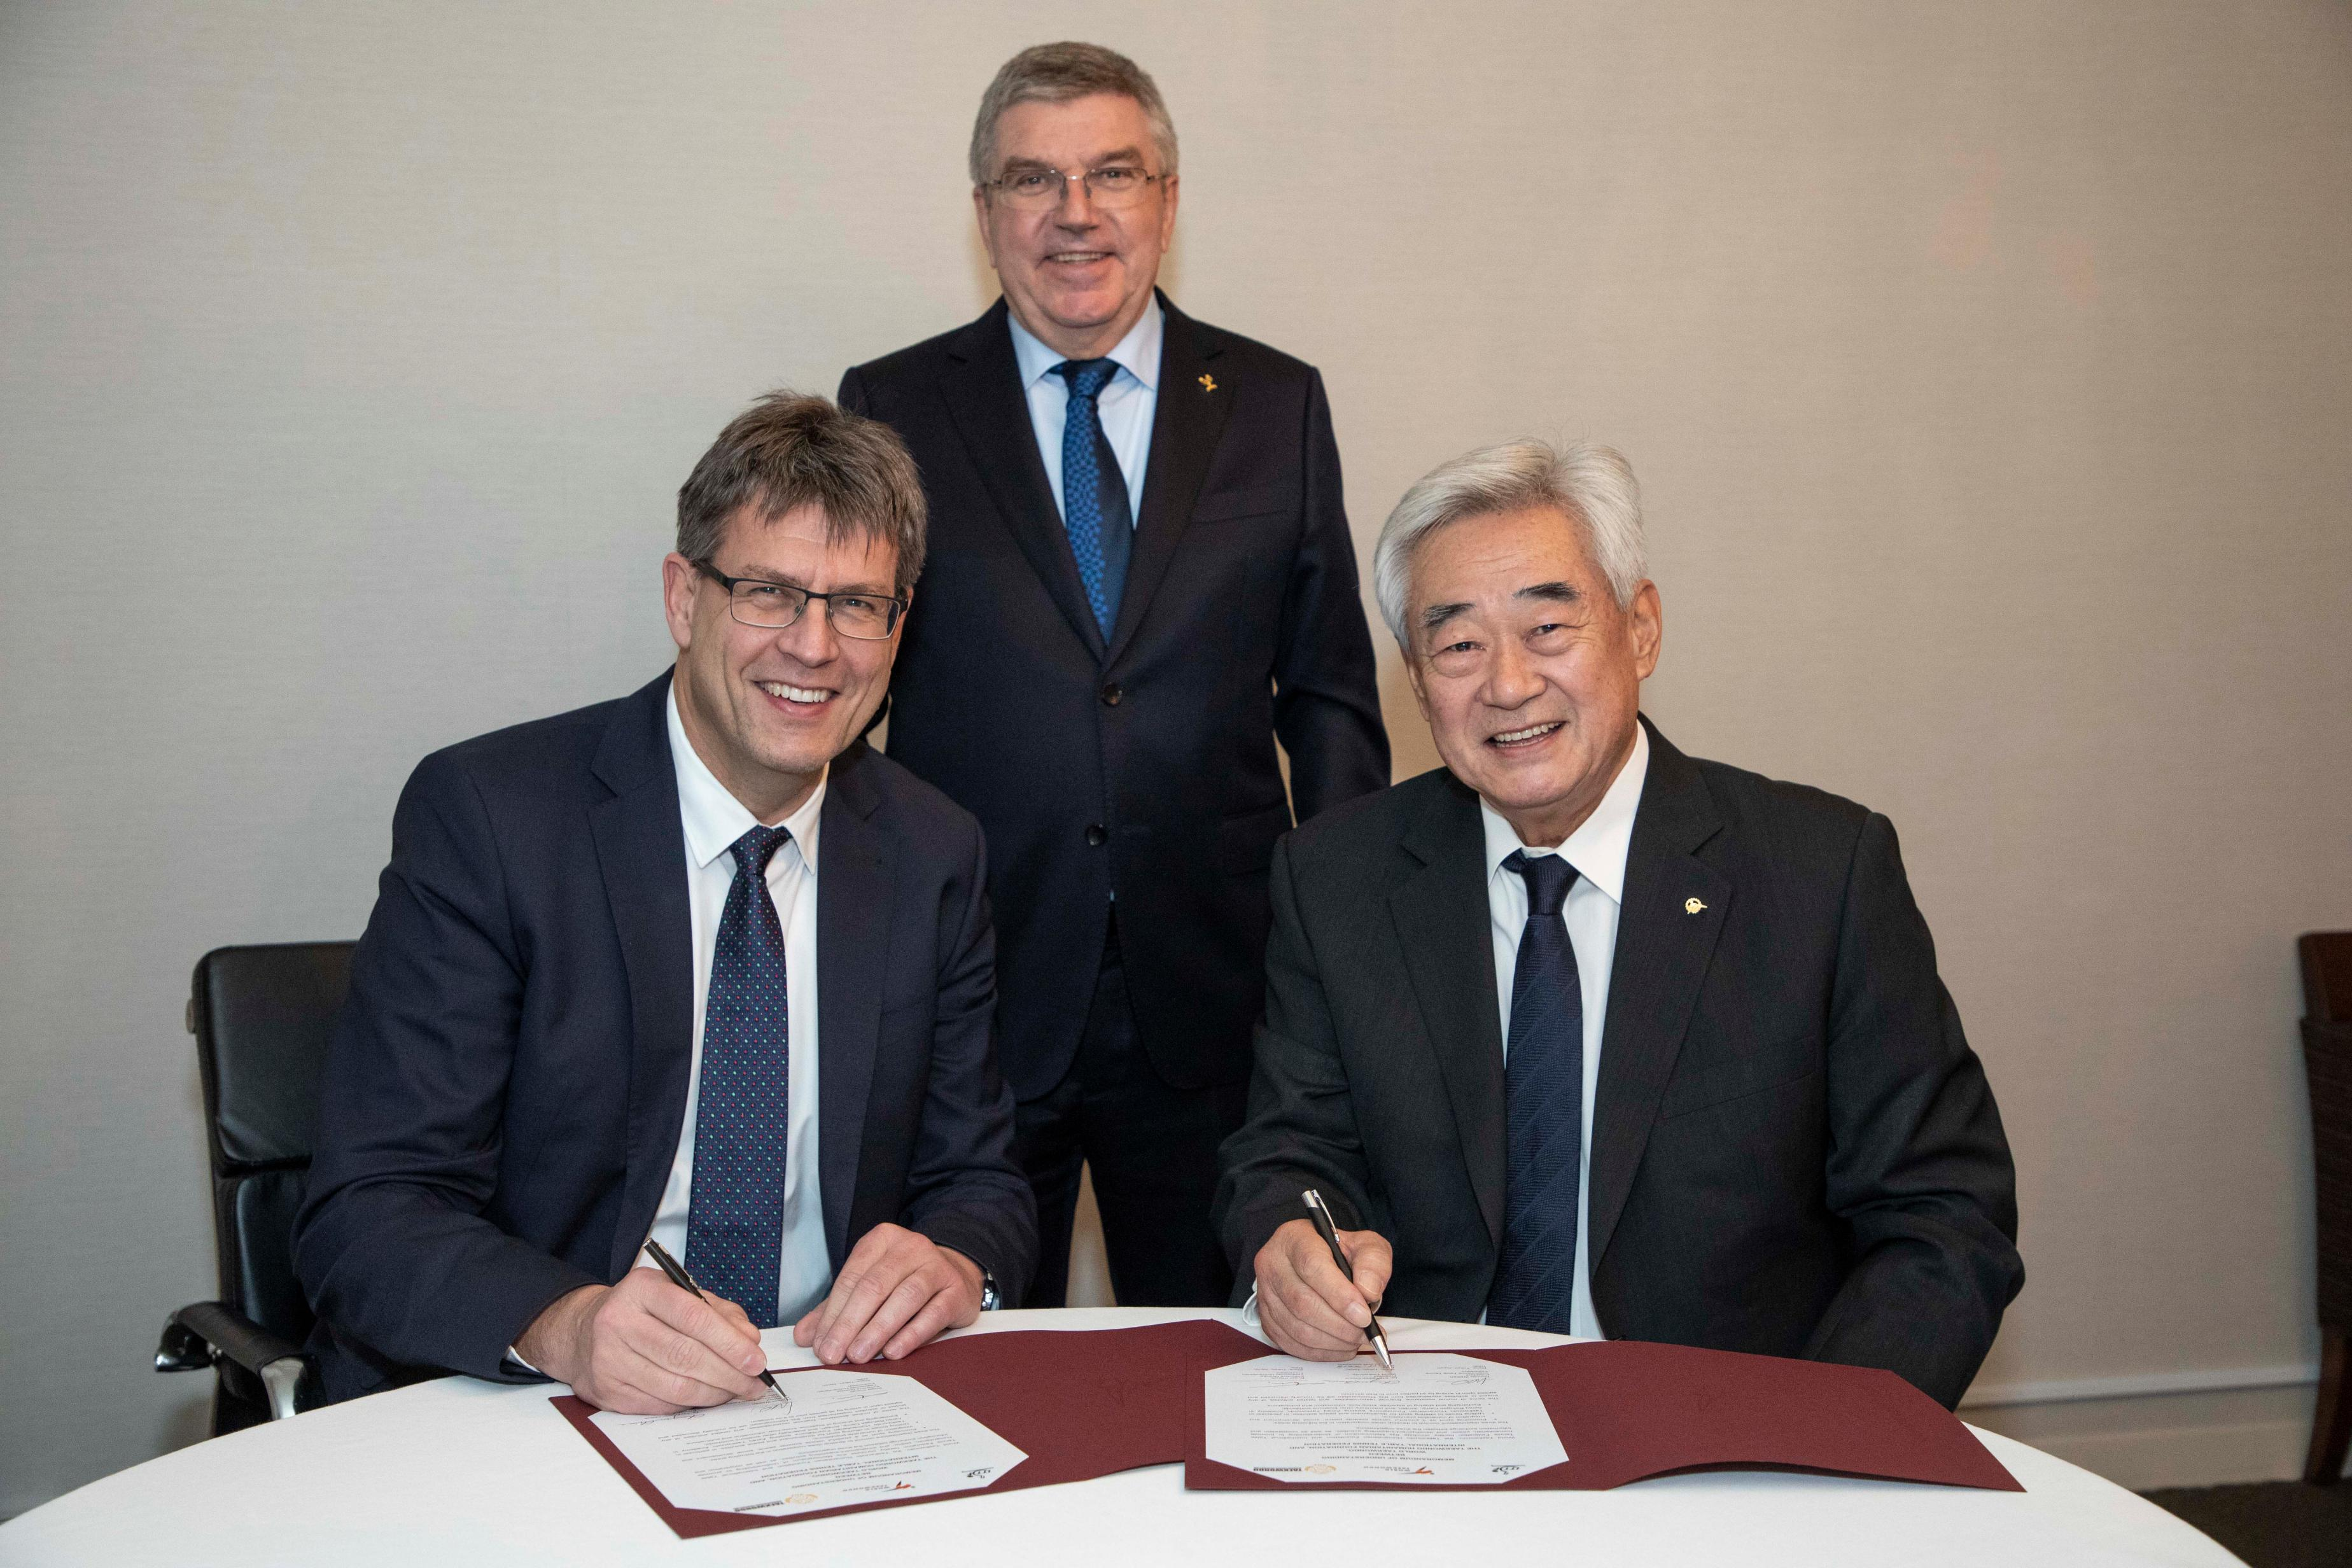 2018.11.28_ ITTF President Thomas Weikert (left), IOC President Thomas Bach (middle), and WT President Chungwon Choue (right) poses during the signing of WT-ITTF MOU